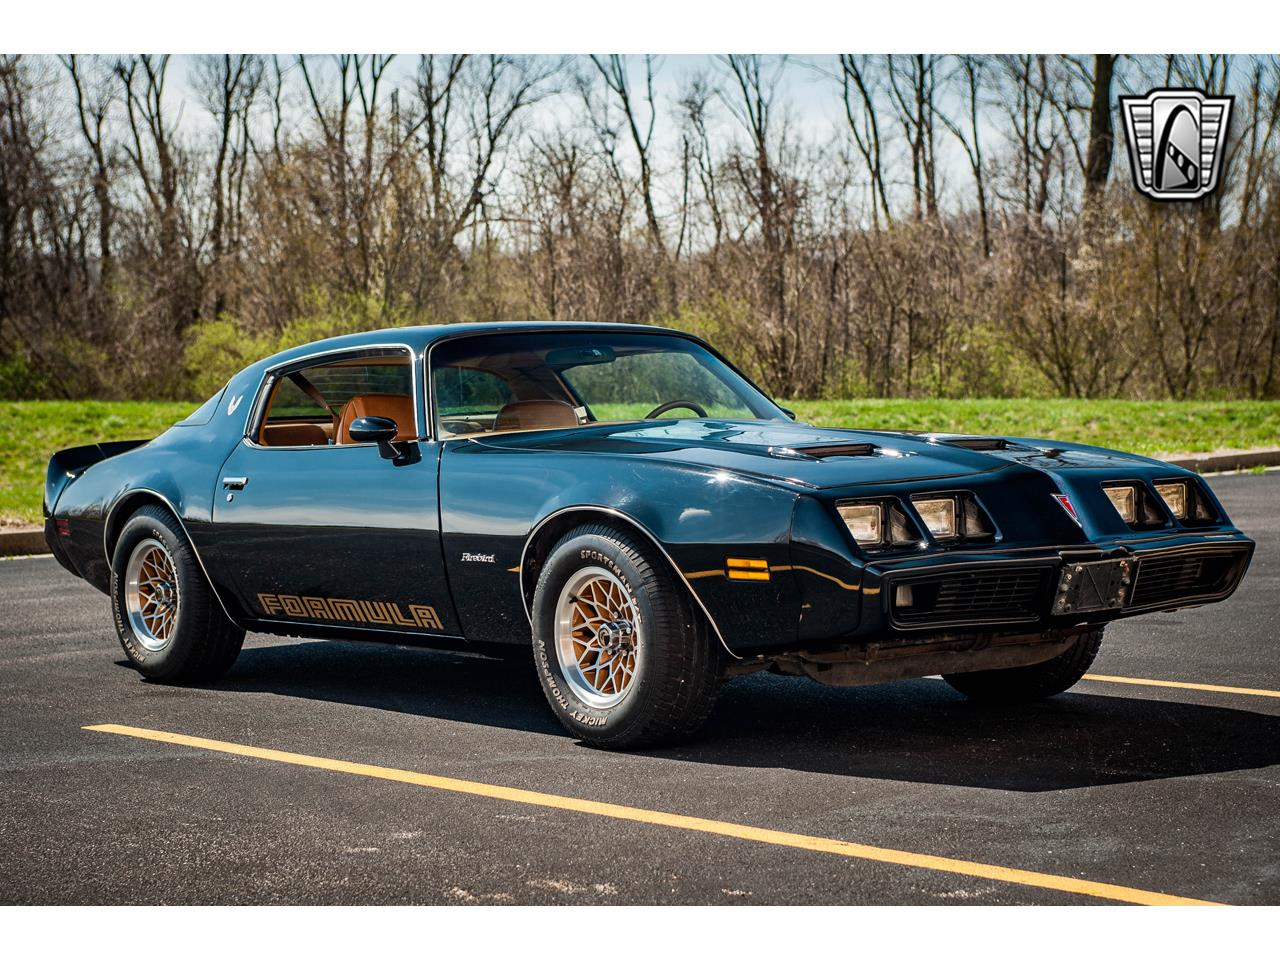 Large Picture of 1979 Pontiac Firebird located in O'Fallon Illinois Offered by Gateway Classic Cars - St. Louis - QB8A